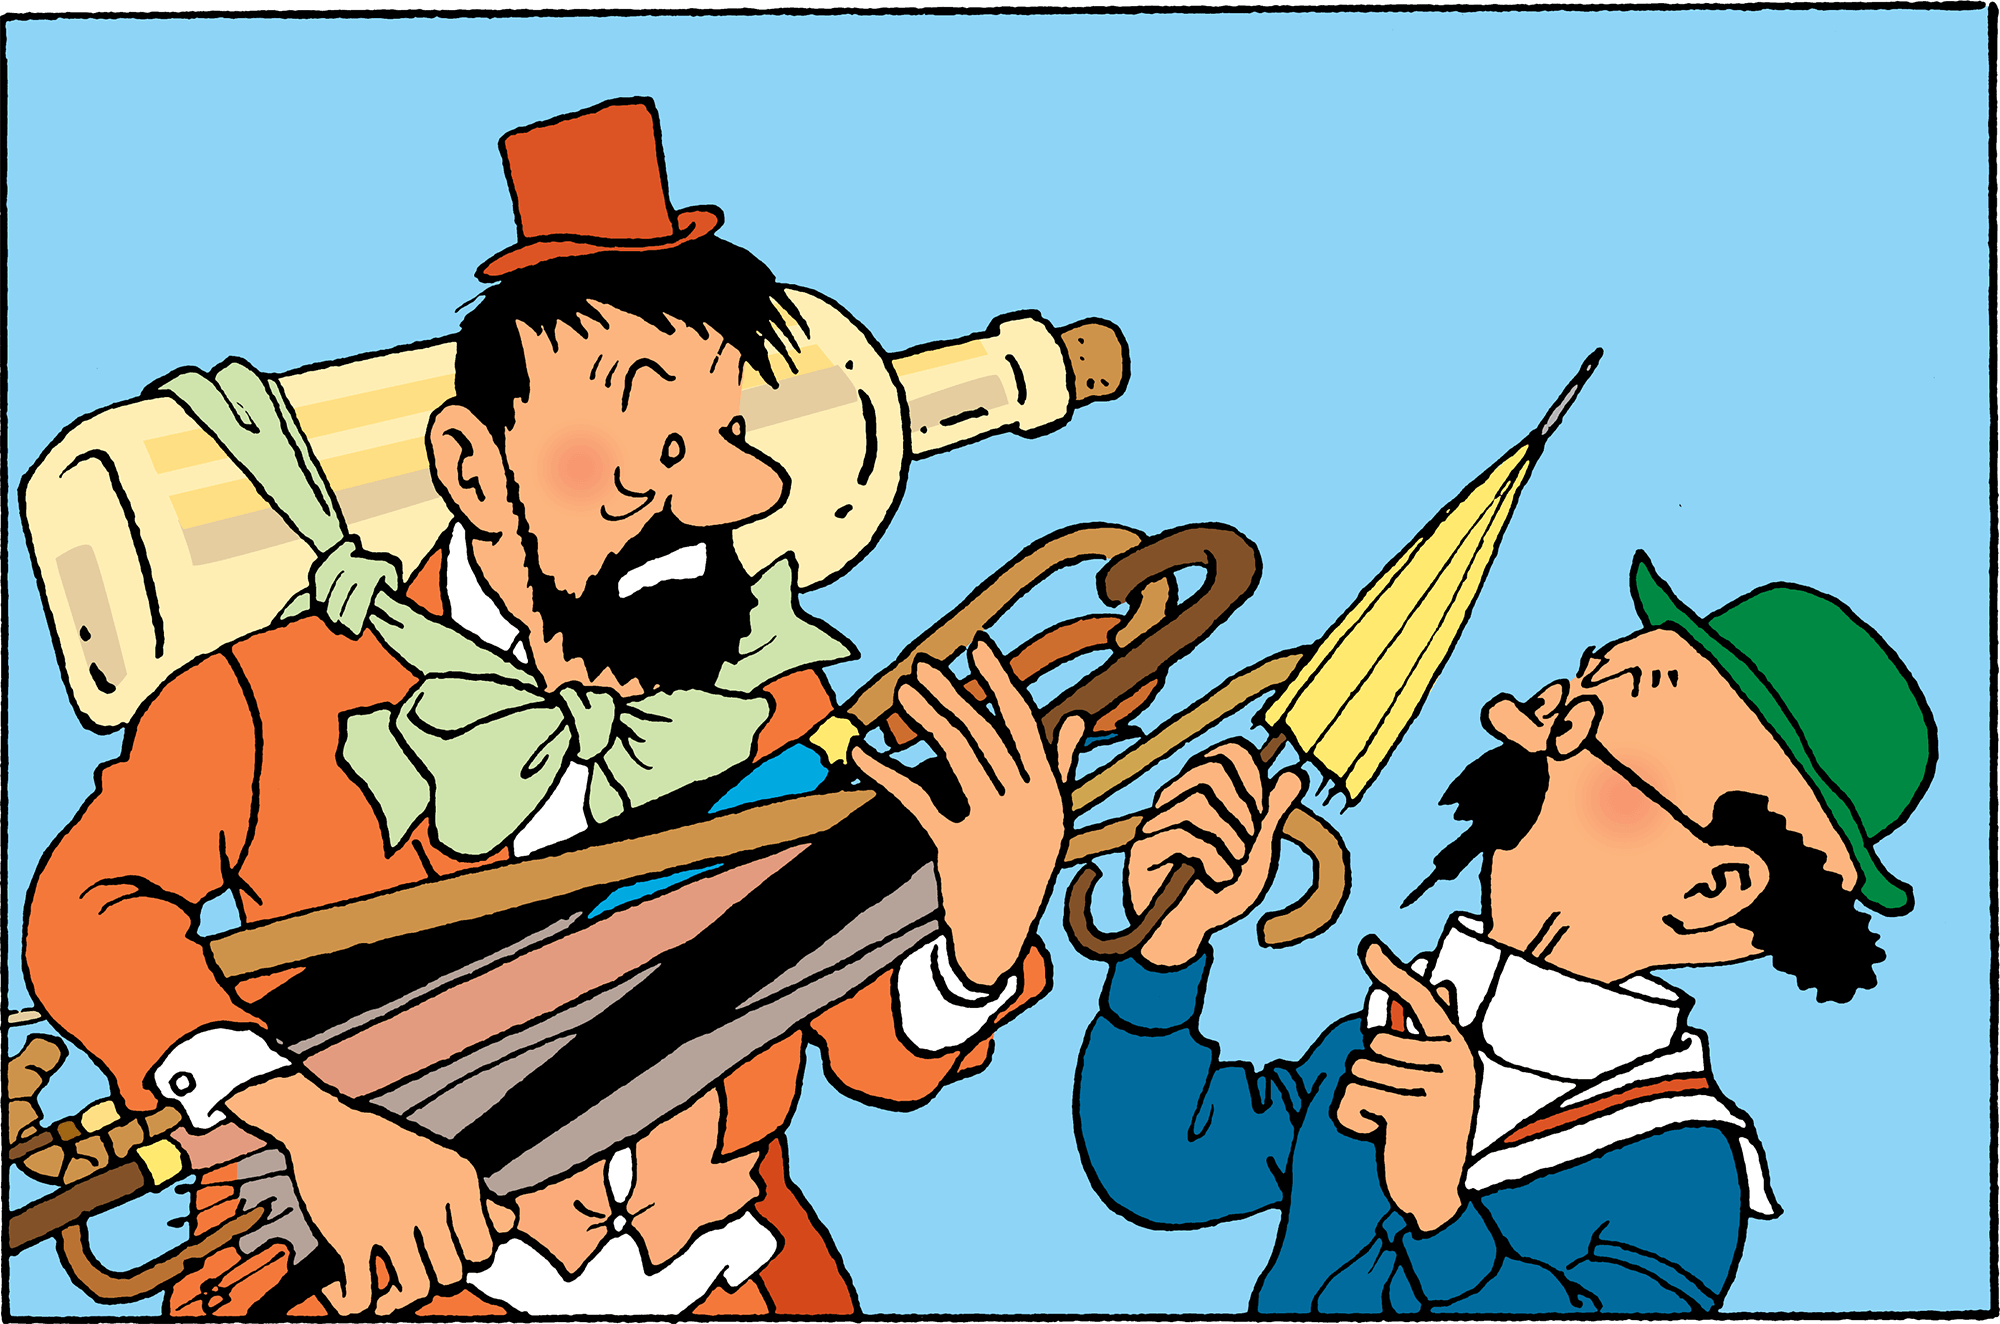 Tintin in Tibet - Haddock experiences a troubling series of hallucinations